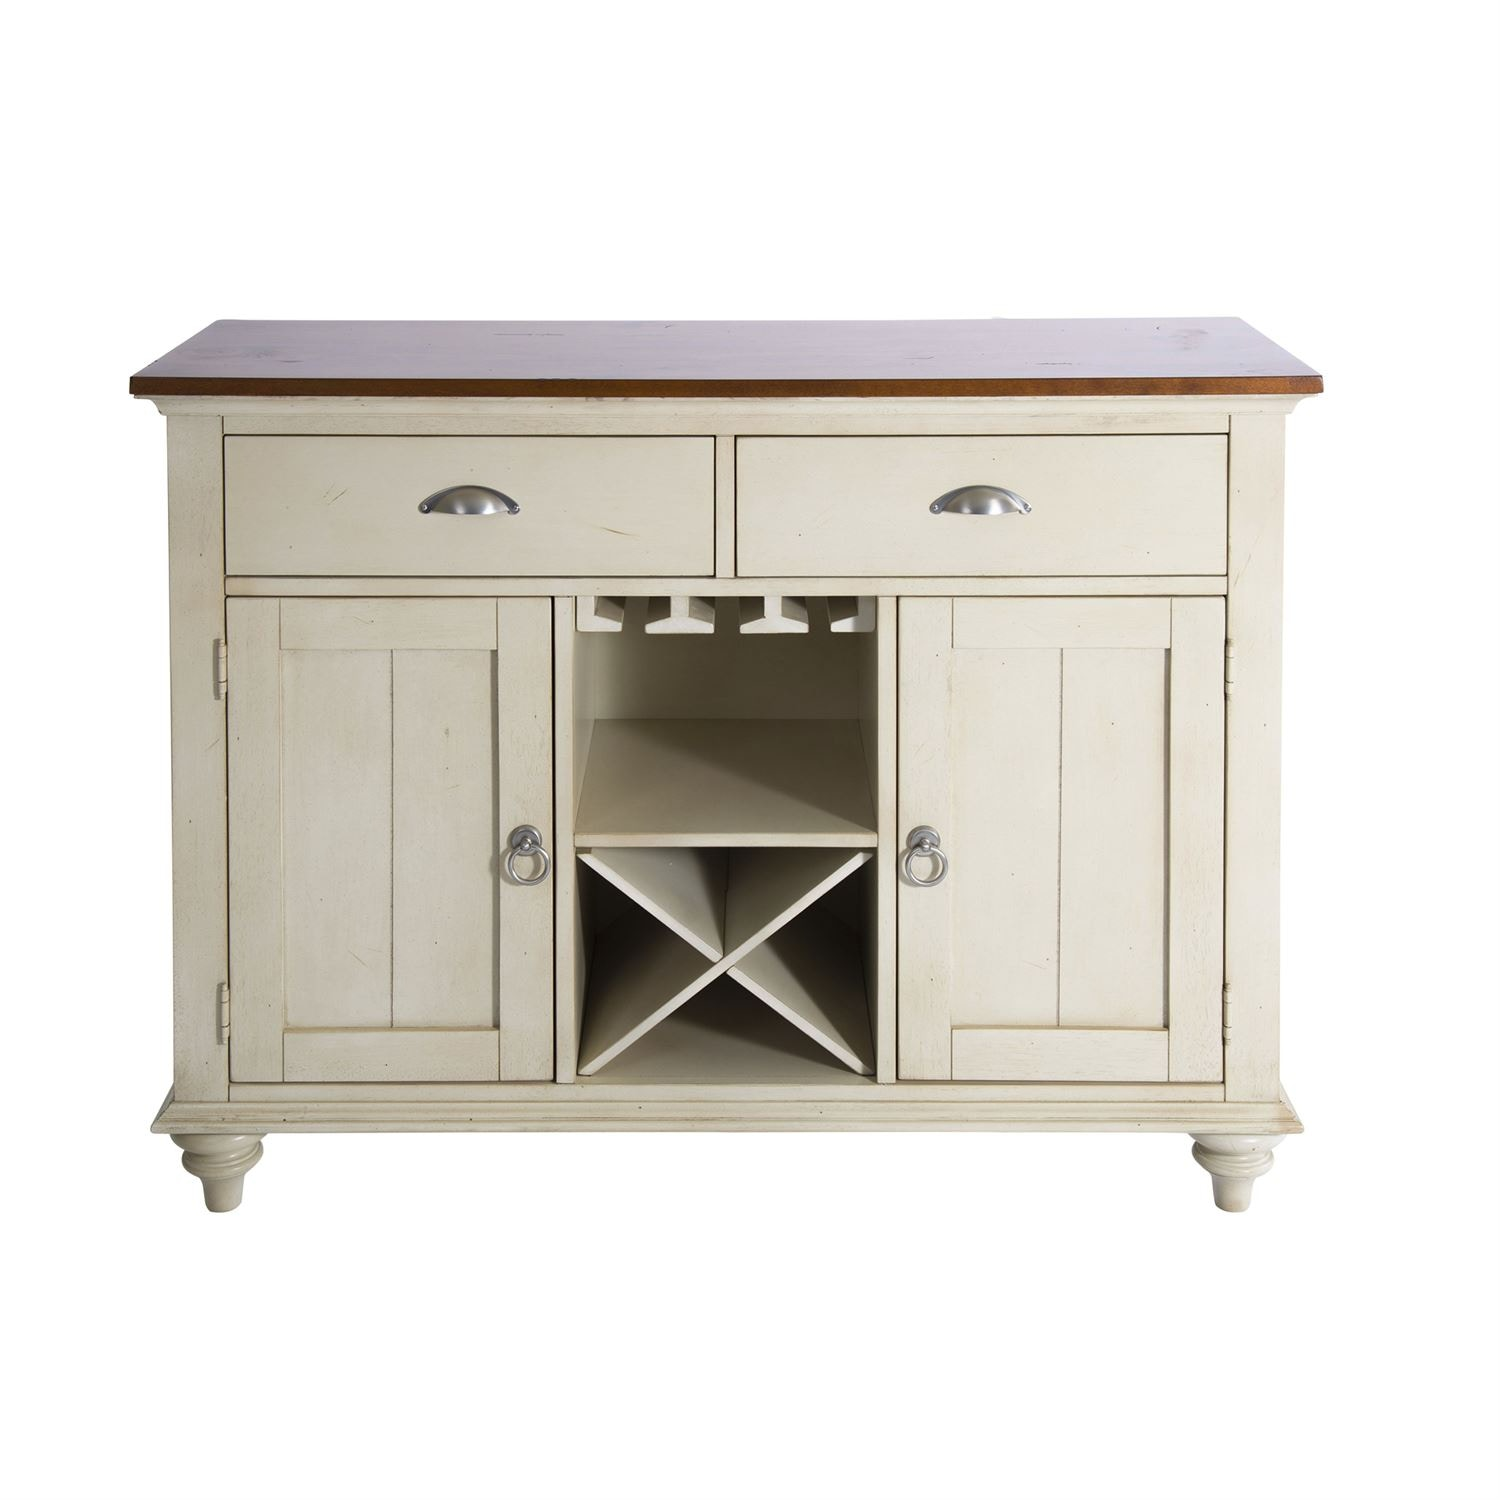 Liberty Furniture Dining Room Buffet 303 CB4866 At Smith Village Home  Furniture